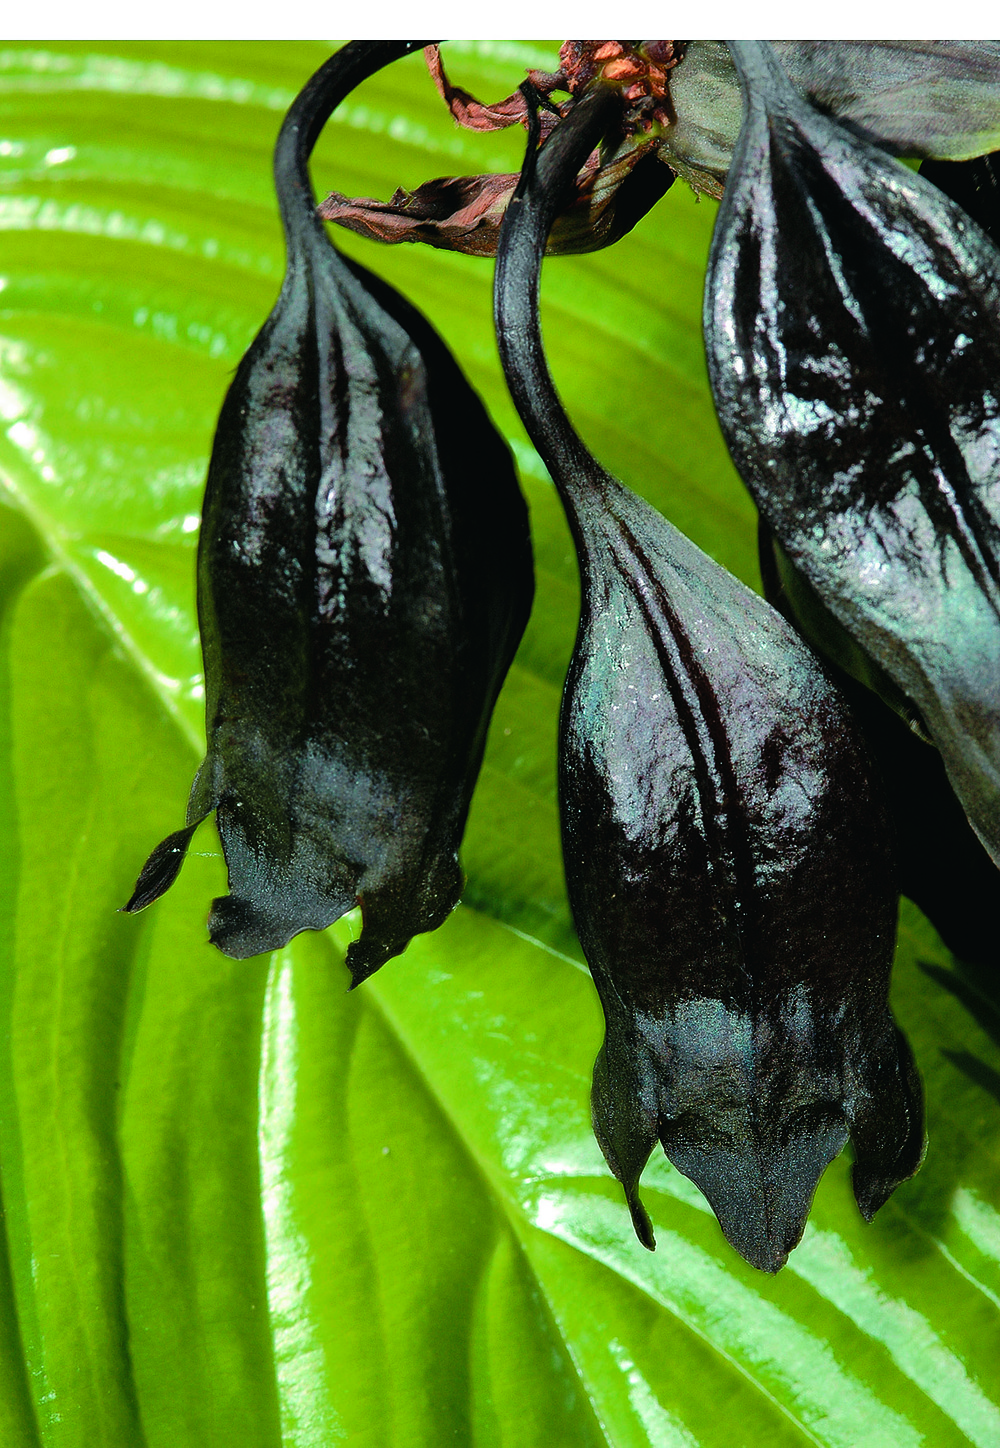 Even prior to blooming, the Black Bat Plant resembles sleeping bats hanging downward from their roost